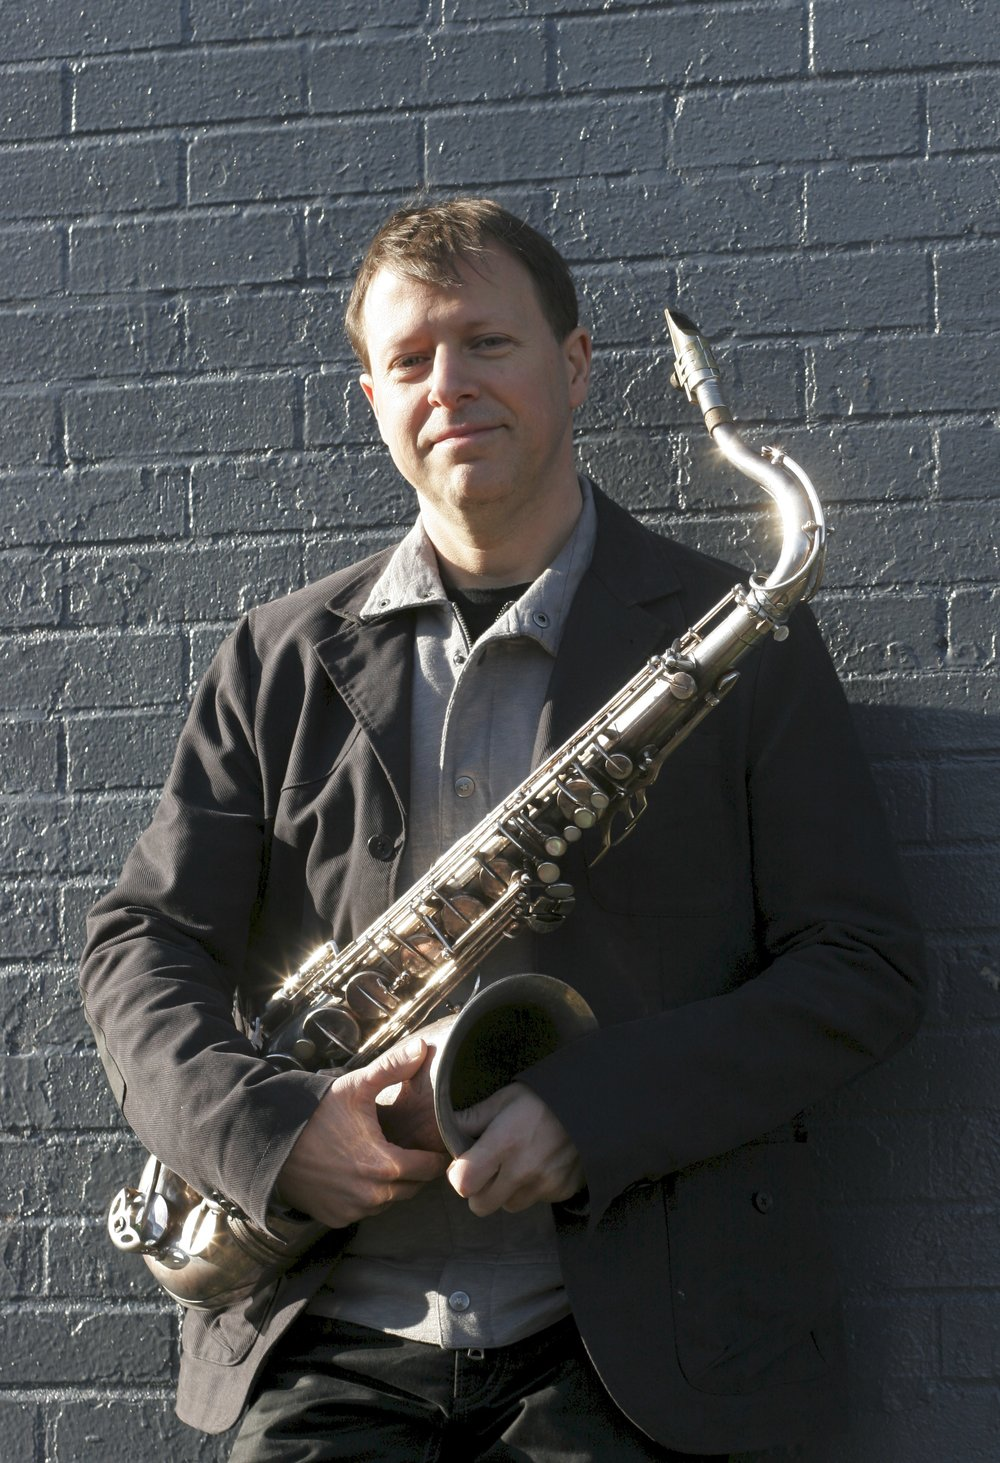 "Chris Potter - A world-class soloist, accomplished composer and formidable bandleader, saxophonist Chris Potter has emerged as a leading light of his generation. Down Beat called him ""One of the most studied (and copied) saxophonists on the planet"" while Jazz Times identified him as ""a figure of international renown."" Jazz sax elder statesman Dave Liebman called him simply, ""one of the best musicians around,"" a sentiment shared by the readers of Down Beat in voting him second only to tenor sax great Sonny Rollins in the magazine's 2008 Readers Poll.A potent improvisor and the youngest musician ever to win Denmark's Jazzpar Prize, Potter's impressive discography includes 15 albums as a leader and sideman appearances on over 100 albums. He was nominated for a Grammy Award for his solo work on ""In Vogue,"" a track from Joanne Brackeen's 1999 album Pink Elephant Magic, and was prominently featured on Steely Dan's Grammy- winning album from 2000, Two Against Nature. He has performed or recorded with many of the leading names in jazz, such as Herbie Hancock, Dave Holland, John Scofield, the Mingus Big Band, Jim Hall, Paul Motian, Dave Douglas, Ray Brown and many others.His most recent recording, Ultrahang, is the culmination thus far of five years' work with his Underground quartet with Adam Rogers on guitar, Craig Taborn on Fender Rhodes, and Nate Smith on drums. Recorded in the studio in January2009 after extensive touring, it showcases the band at its freewheeling yet cohesive best.Since bursting onto the New York scene in 1989 as an 18-year-old prodigy with bebop icon Red Rodney (who himself had played as a young man alongside the legendary Charlie Parker), Potter has steered a steady course of growth as an instrumentalist and composer-arranger. Through the '90s, he continued to gain invaluable bandstand experience as a sideman while also making strong statements as a bandleader-composer-arranger. Acclaimed outings like 1997's Unspoken (with bassist and mentor Dave Holland, drummer Jack DeJohnette and guitarist John Scofield), 1998's Vertigo, 2001's Gratitude and 2002's Traveling Mercies showed a penchant for risk-taking and genre-bending. ""For me, it just seemed like a way of opening up the music to some different things that I had been listening to but maybe hadn't quite come out in my music before,"" he explains.Potter explored new territory on 2004's partly electric Lift: Live at the Village Vanguard (with bassist Scott Colley, drummer Bill Stewart and keyboardist Kevin Hays) then pushed the envelope a bit further on 2006's Underground (with guitarist Wayne Krantz, electric pianist Craig Taborn and drummer Nate Smith). As he told Jazz Times: ""I've wanted to do something more funk-related...music that seems to be in the air, all around us. But also keep it as free as the freest jazz conception.""He continued in this electrified, groove-oriented vein with 2007's Follow The Red Line: Live at the Village Vanguard (with guitarist Adam Rogers replacing Krantz in the lineup). Says Potter of the adventurous new path he's carved out for himself with his bass-less Underground quartet: ""There was a point where I felt like thecontext I had been using before wasn't quite working to express what I wanted or to move forward in some kind of way. My aesthetic as a saxophonist has always been based in Bird and Lester Young and Sonny Rollins and all the other greats on the instrument. What I've learned from them in terms of phrasing, sound, and approach to rhythm I'll never outgrow. However music's a living thing; it has to keep moving. I've been touched by many forms of music, like funk, hip hop, country, different folk musics, classical music, etc., and for me not to allow these influences into my music would be unnecessarily self-limiting. The difficulty is incorporating these sounds in an organic, unforced way. It helps me to remember I want people to feel the music, even be able to dance to it, and not think of it it as complicated or forbidding. If I can play something that has meaning for me, maybe I'll be able to communicate that meaning to other people, and the stylistic questions will answer themselves.""With the ambitious Song For Anyone (released in 2007 also and dedicated to the memory of Michael Brecker), Potter flexes his muscles as an arranger on original material for an expanded ensemble featuring strings and woodwinds. ""That was a learning process,"" he says of this triumphant tentet project, ""because I hadn't done anything on that scale before. I just decided to sit down and write, and it was extremely gratifying to see how it translated into live performance.""Looking back over his 20 years since arriving in New York, Potter says, ""I've had the chance to learn a lot from all the leaders that I've worked with. Each gave me another perspective on how to organize a band and make a statement. It's taught me that any approach can work, as long as you have a strong vision of what you want to do.""His initial gig with Red Rodney was an eye-opening and educational experiencefor the 18-year-old saxophonist. ""I wish I had had the perspective I have now to appreciate what a larger-than-life character Red was."" Potter's years with Paul Motian's Electric Bebop Band represented a wholly different approach from Rodney's old school bebop aesthetic on stage. ""Motian has really had a big affect on the way that I think about music,"" says the saxophonist. ""He approaches things from such an anti-analytical way. It's so different than so many of the other musicians that I've had a chance to work with. Motian more relies on his aesthetic sensibility and his instinct. He's basically just trusting his gut and he's so strong about it that he can make it work. And it takes a lot of courage to do that.""From bassist-bandleader Dave Holland he learned about the importance of focus and willpower. ""Dave is determined to make his music as strong as possible and present it in the best way,"" says Potter, who has been a member of Holland's groups for the past 10 years. ""Playing with him, you have the feeling there's this mountain standing behind you that you can completely rely on. Working with him over the years has helped me see the true value of believing in what you're doing.""Potter also cites his time on the bandstand with guitar legend Jim Hall as inspirational. ""The way that he can be both melodic and sweet and deeply inventive and open-minded at the same time made a big impression on me,"" he says. Touring and recording with the enigmatic duo of Donald Fagen and Walter Becker (Steely Dan) offered further insights into the artistic process. ""They totally went their own way,"" says Potter. ""I have a lot of respect for them and their commitment to their art.""And Potter has remained committed to his art since his formative years. Born inChicago on Jan.1, 1971, his family moved to Columbia, South Carolina when he was 3. There he started playing guitar and piano before taking up the alto saxophone at age 10, playing his first gig at 13. When piano legend Marian McPartland first heard Chris at 15 years old, she told his father that Chris was ready for the road with a unit such as Woody Herman's band, but finishing school was a priority. At age 18, Potter moved to New York to study at the New School and Manhattan School of Music, while also immersing himself in New York's jazz scene and beginning his lifelong path as a professional musician.Now a respected veteran (as well as a new father), Potter continues to work as a bandleader and featured sideman. Surely many interesting chapters await. As his longtime colleague, alto saxophonist-composer Dave Binney, told Down Beat, ""Chris is open to anything now. From here on anything could happen."" -Bill Milkowski"